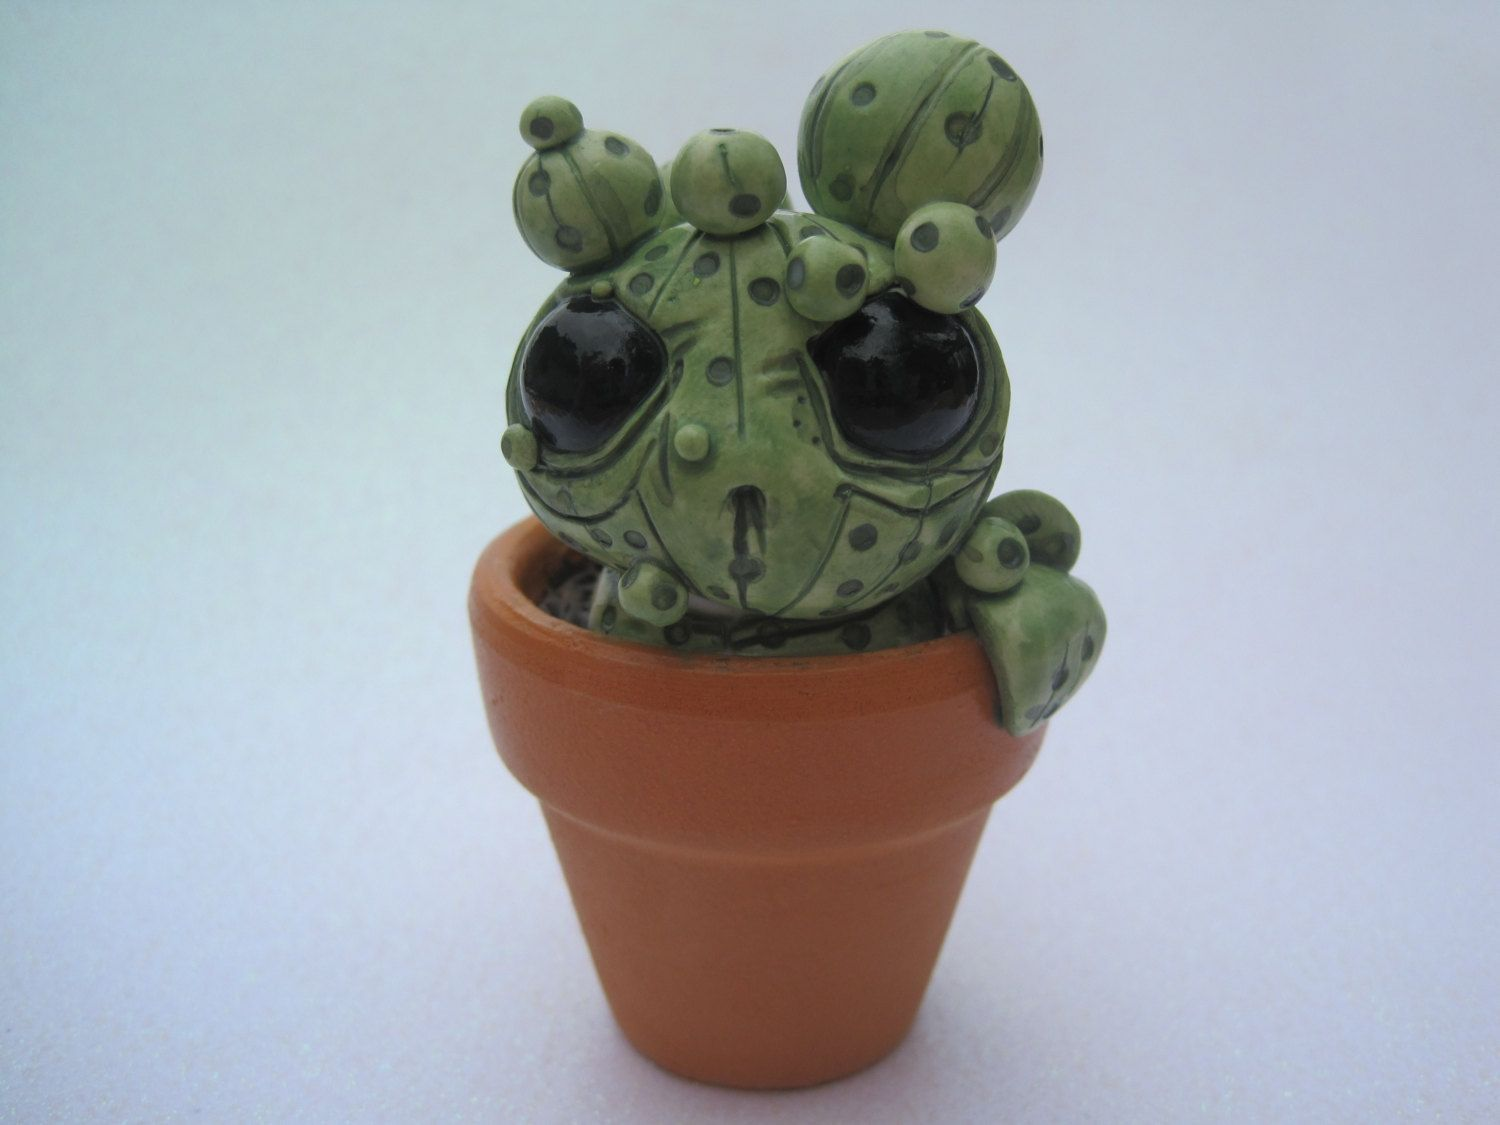 Cute Cactus Creature Mad Cacti Sculpture Green Potted Desert Plant by PlayfulPixieCreation on Etsy